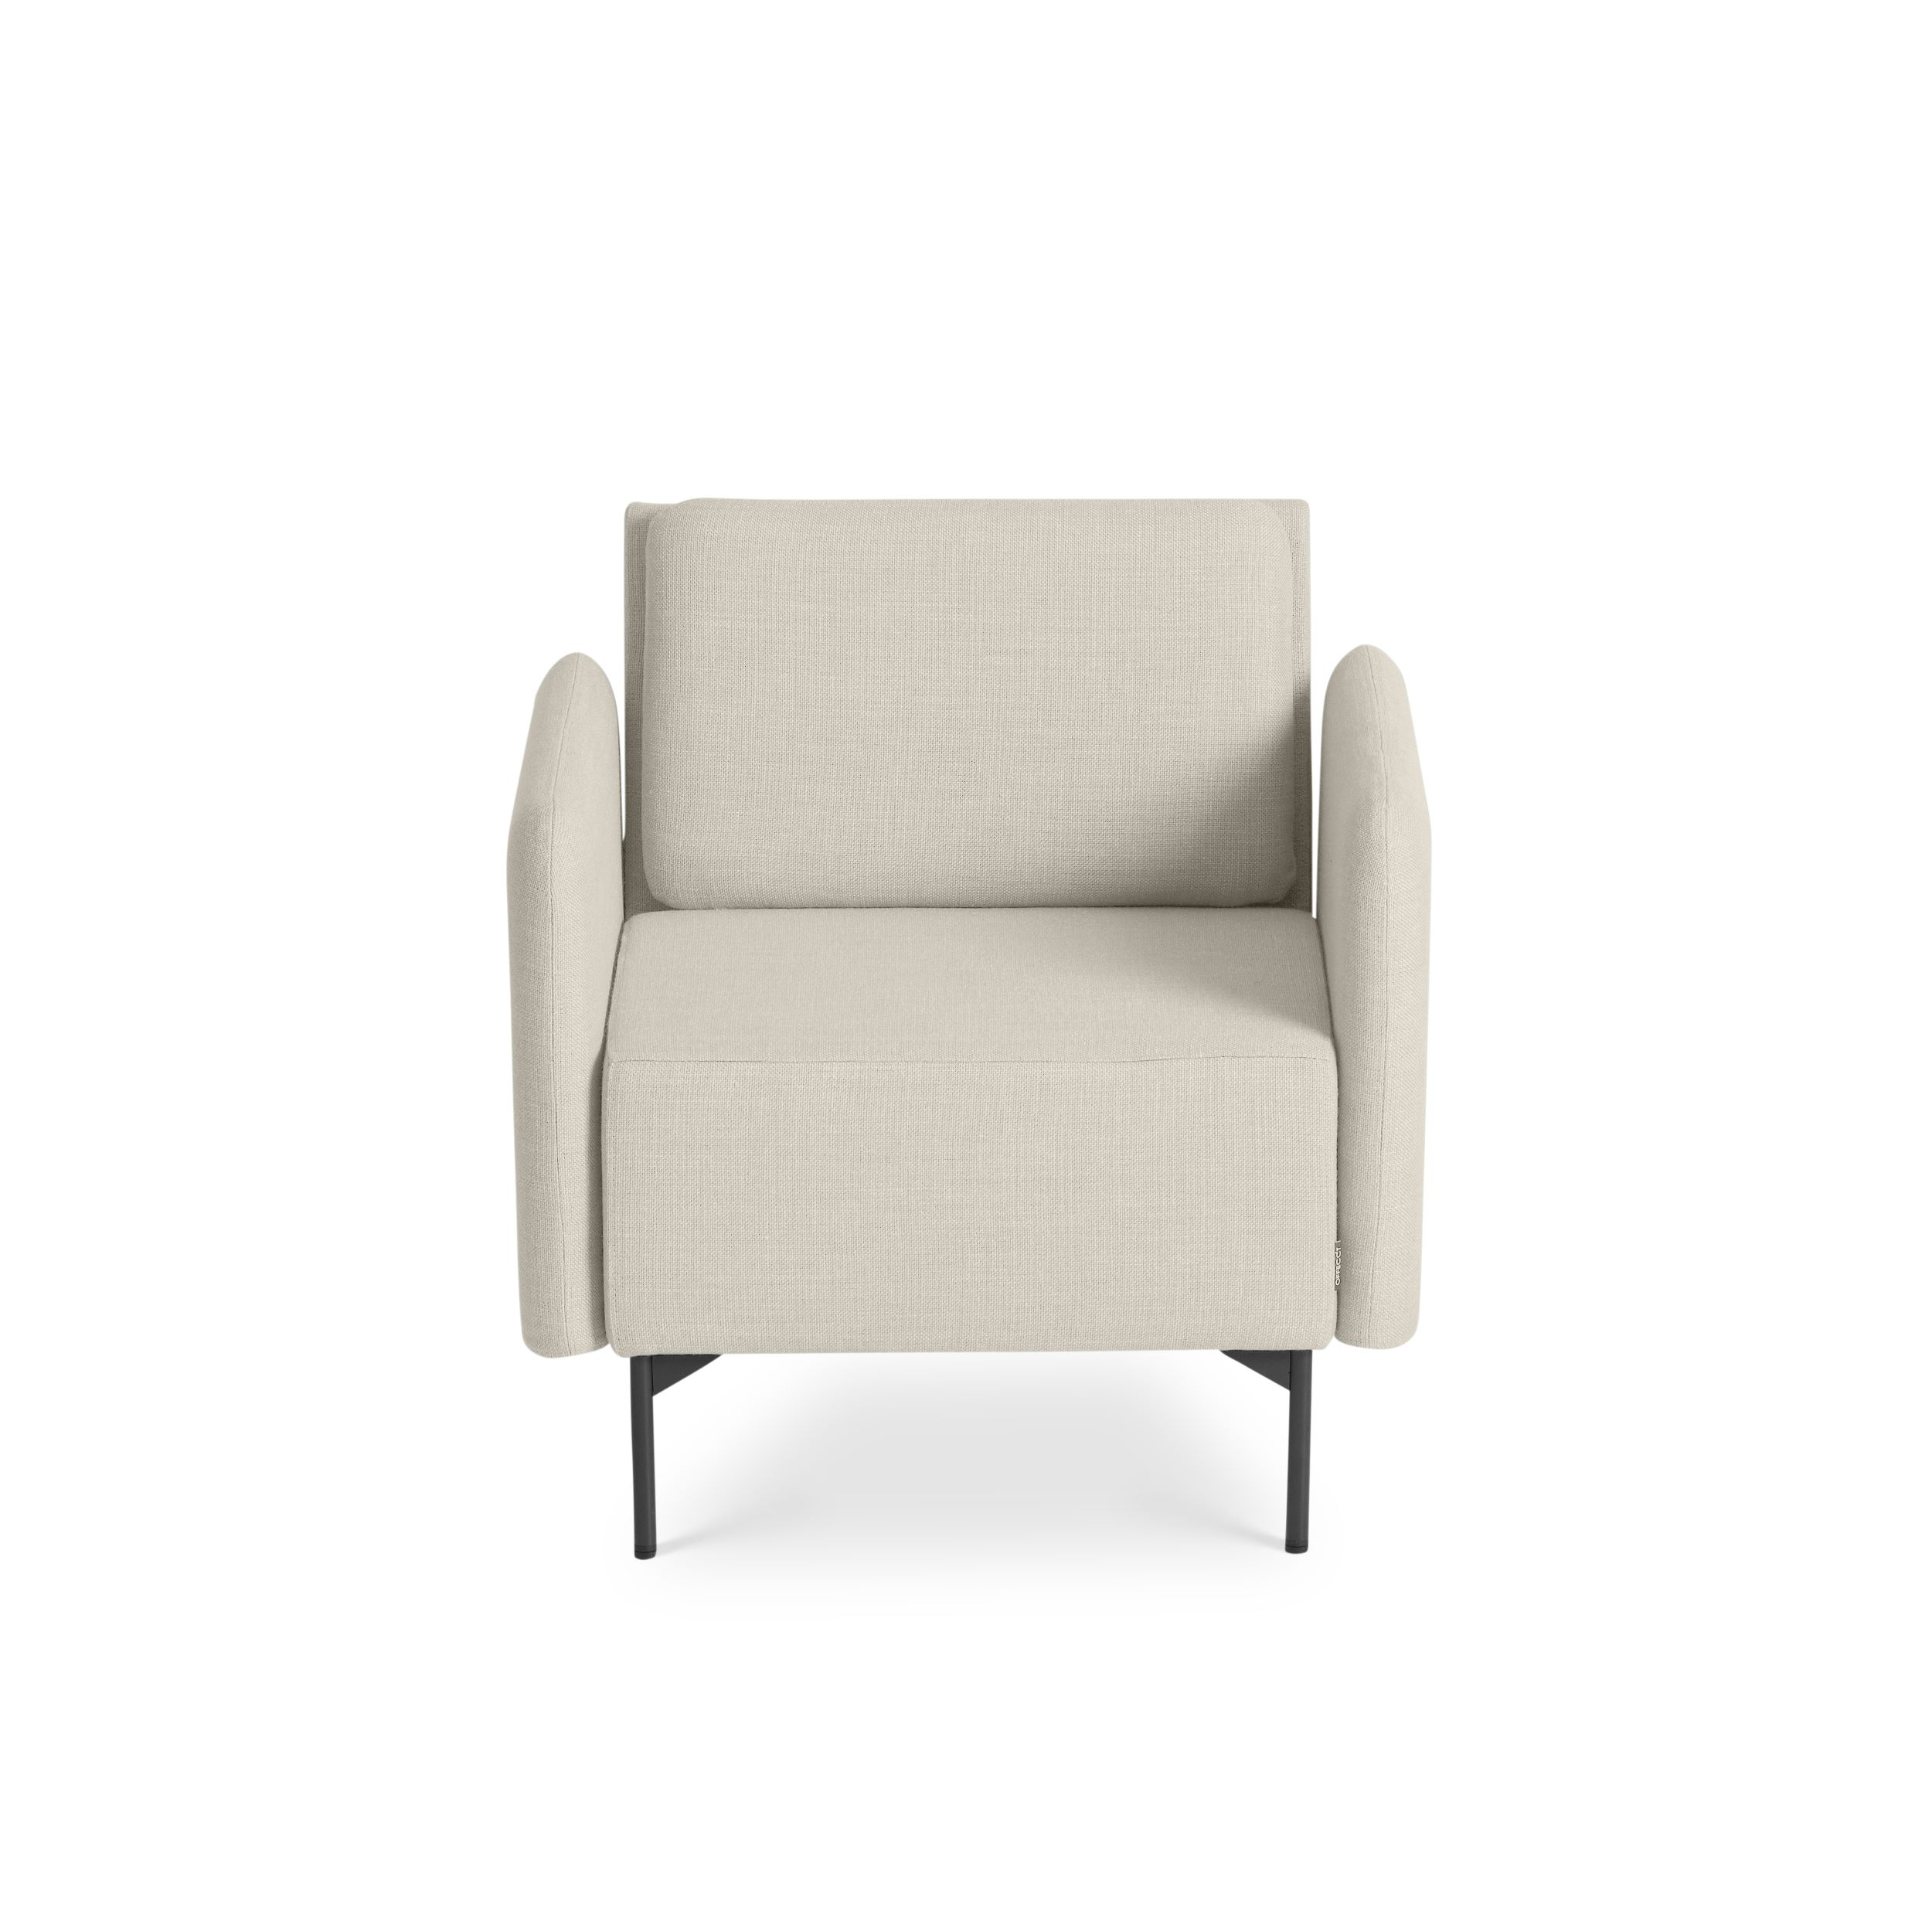 Playback, Easy chair by Claesson Koivisto Rune